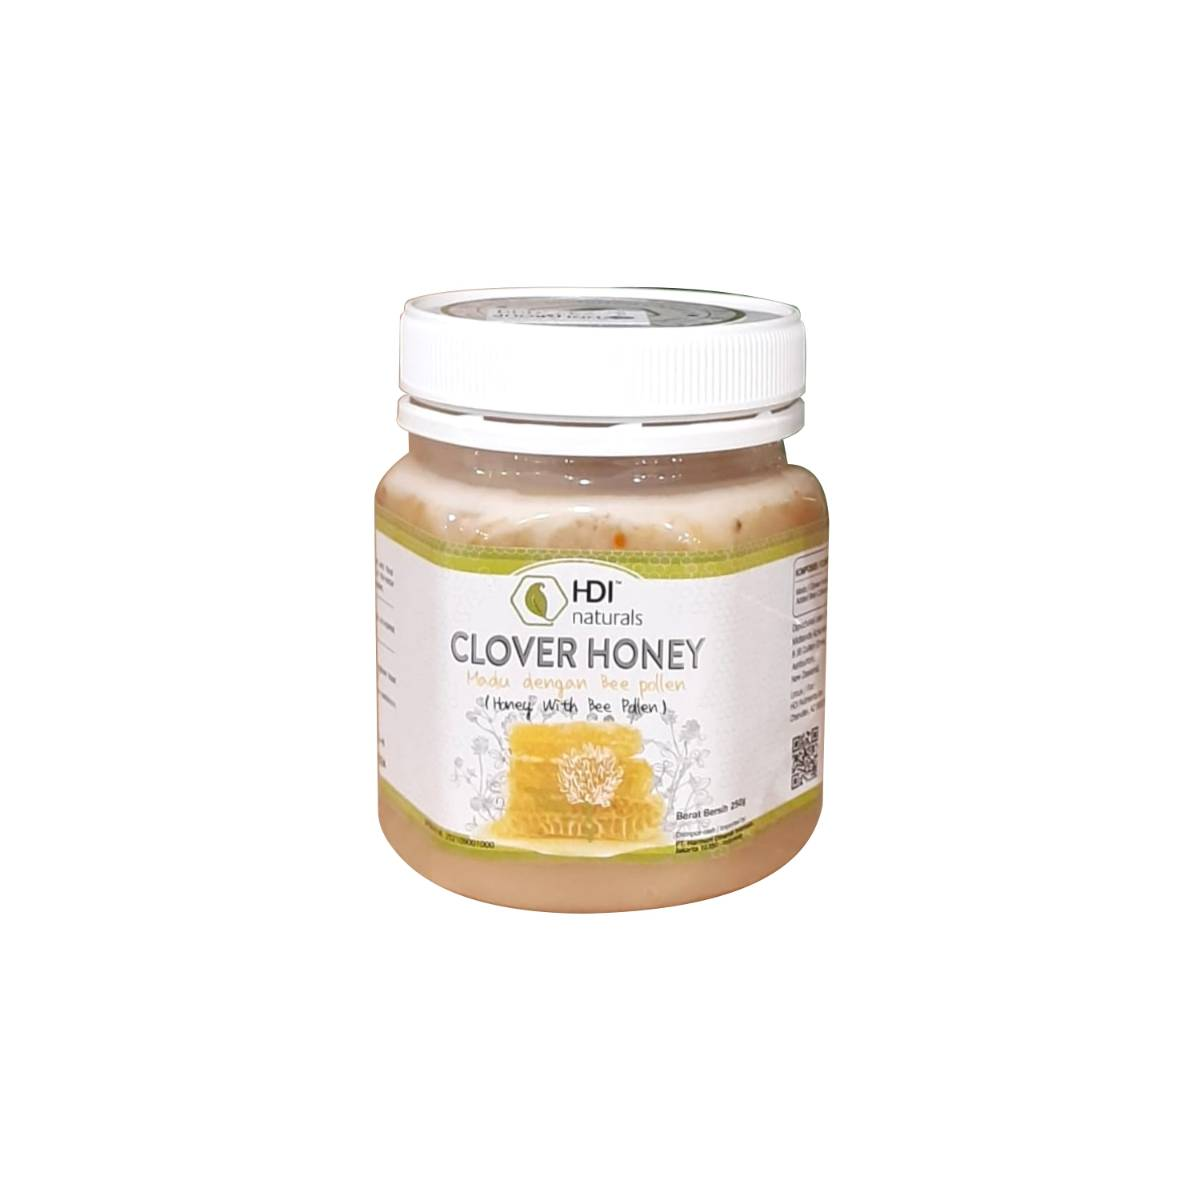 HDI CLOVER HONEY 250gr ORIGINAL BPOM